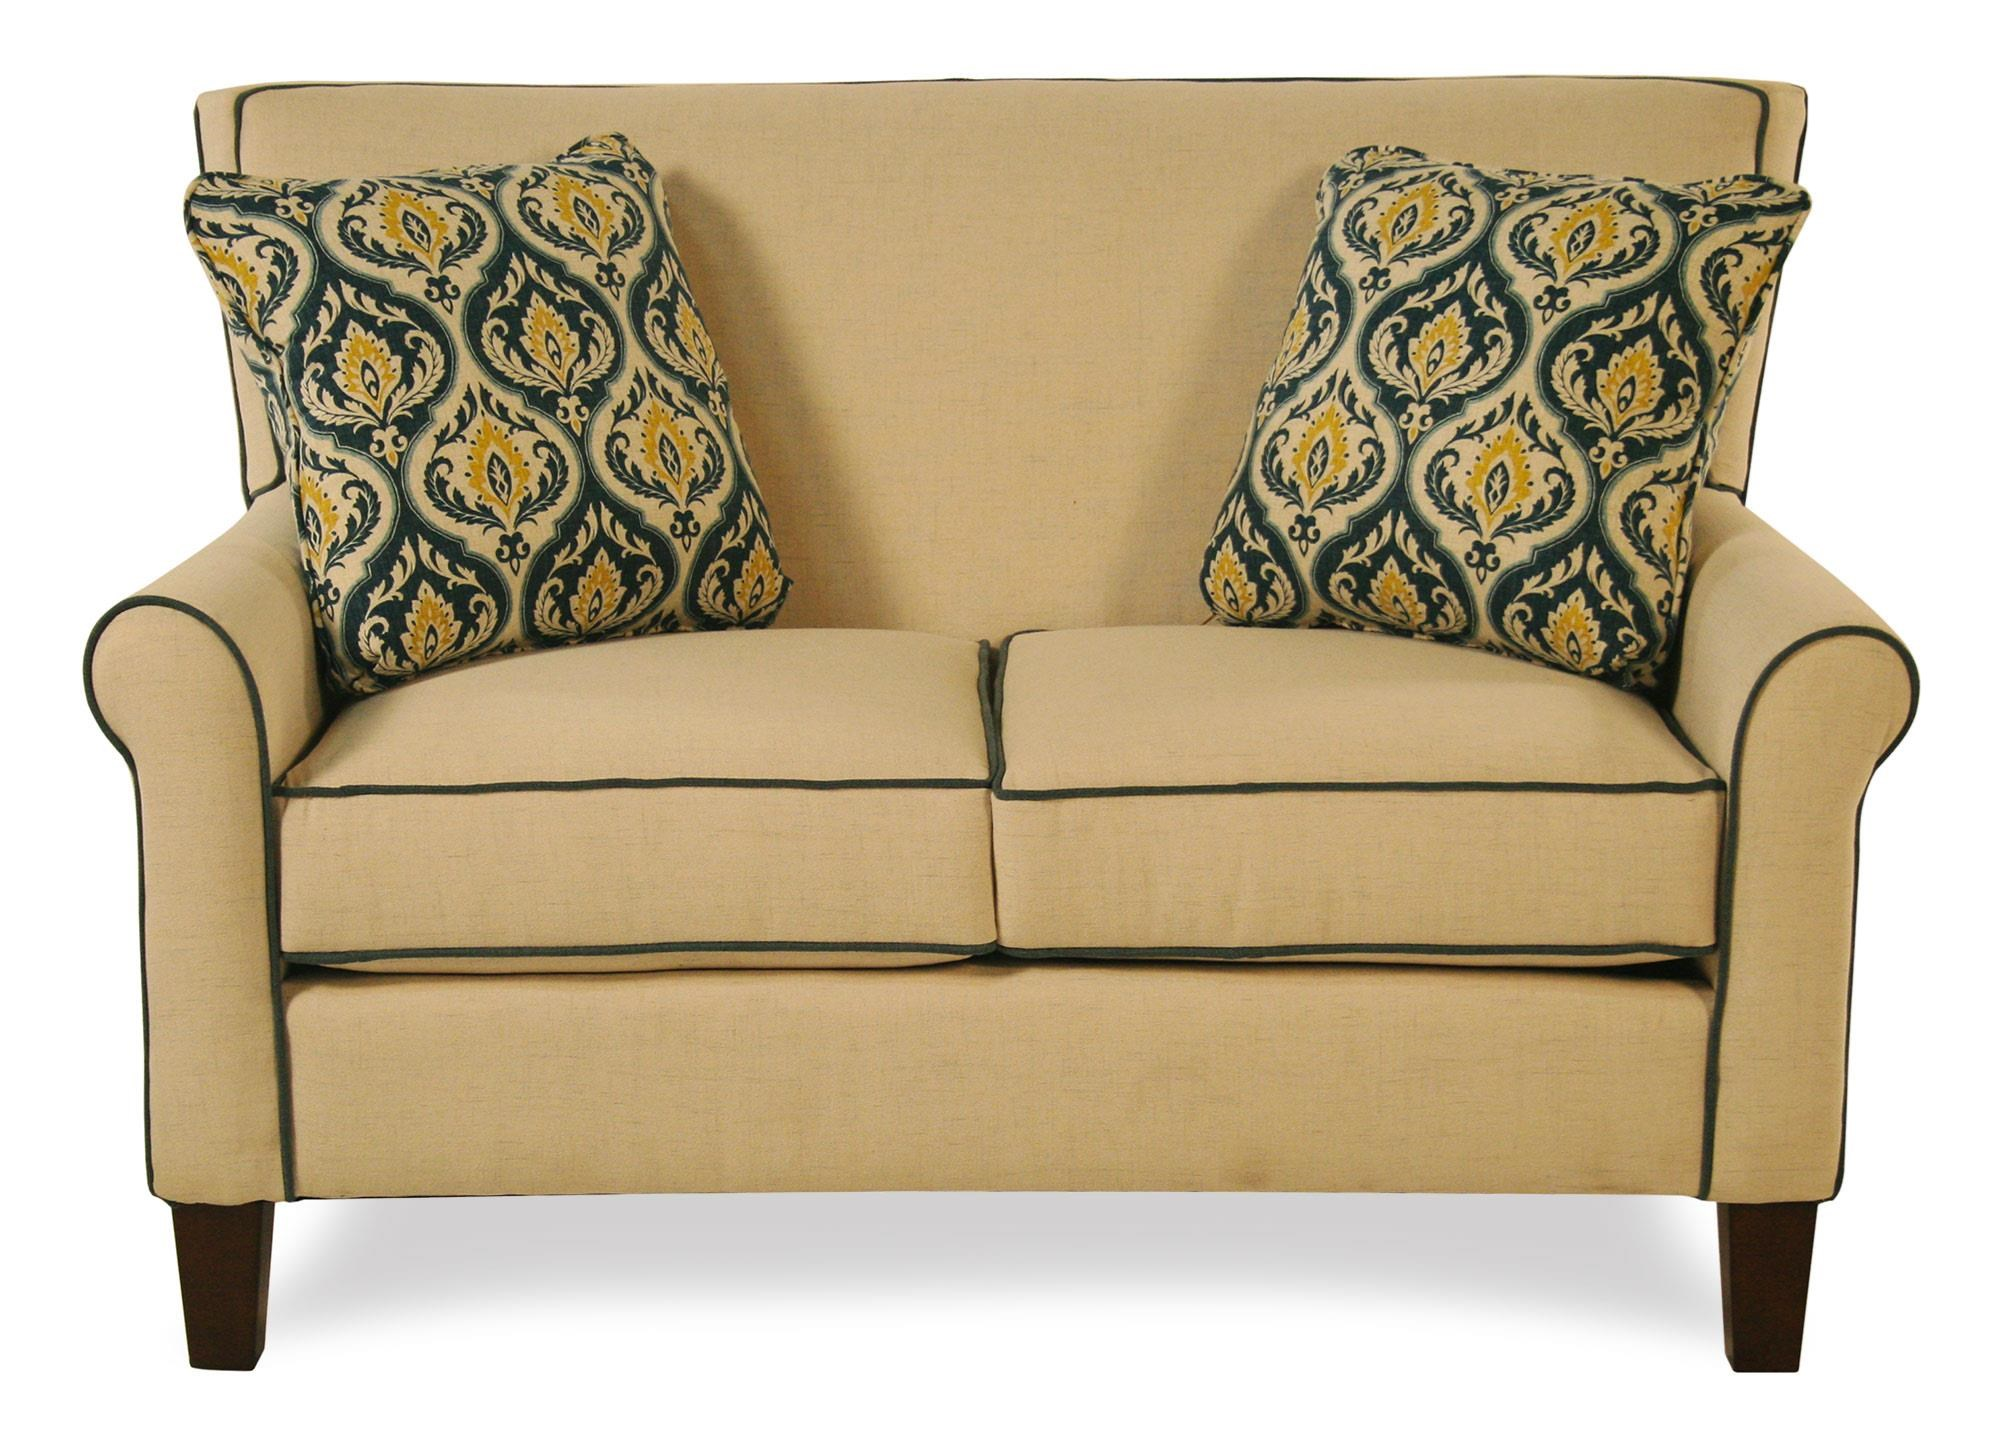 Cozy Life Mazie Tight Back Loveseat - Item Number: 751630-BAMBOO31